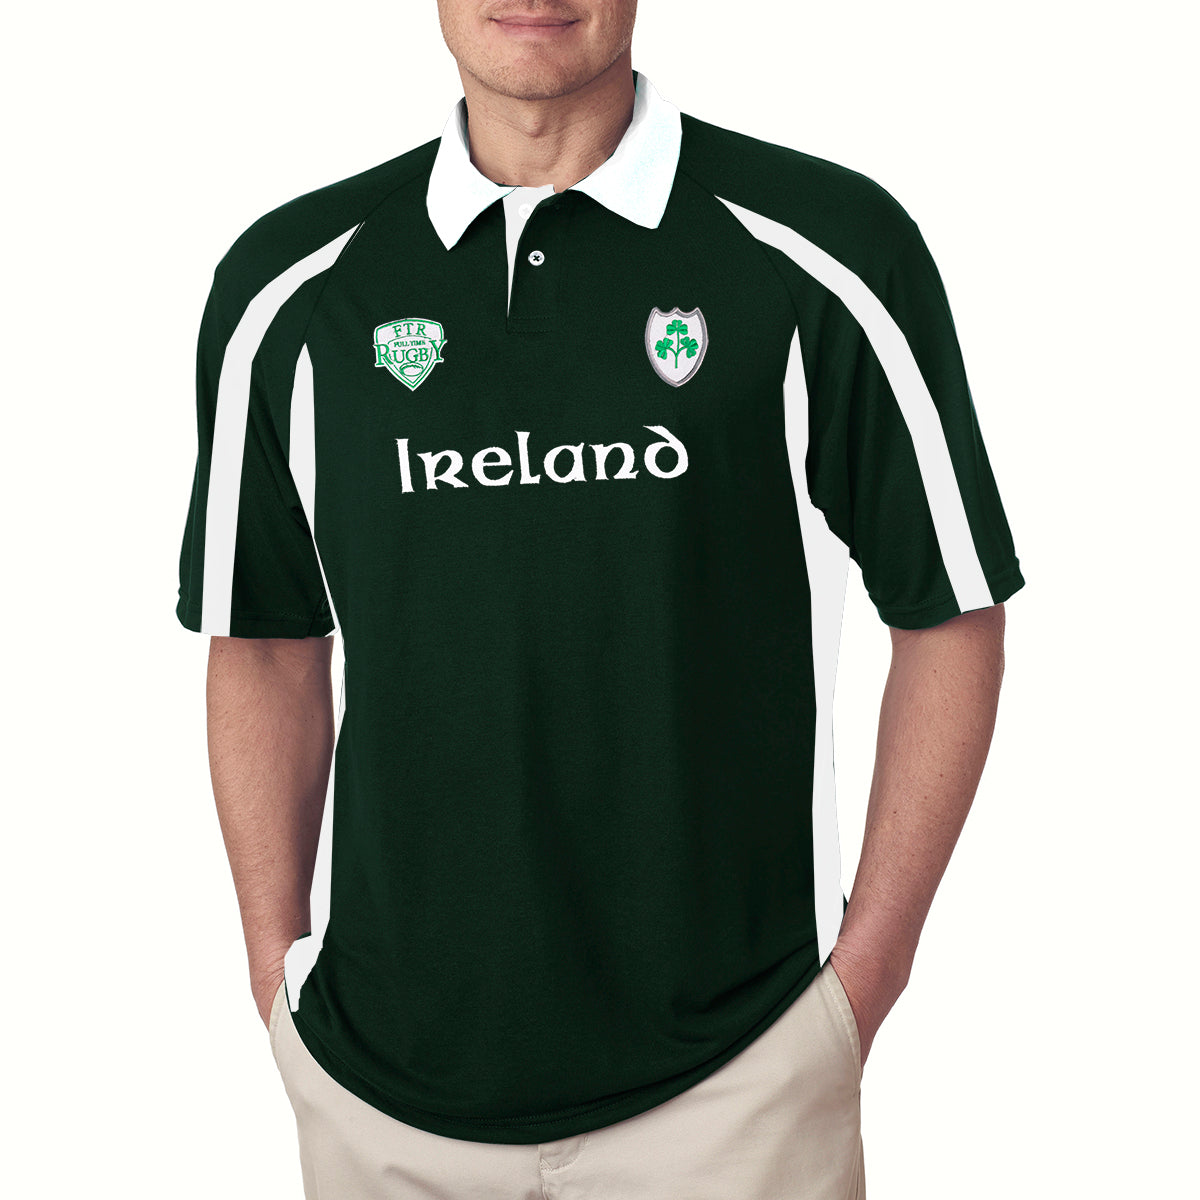 acf5d1b98ed IRELAND Rugby Half Sleeve Polo Shirt For Men-Green & White-BE3275 -  BrandsEgo